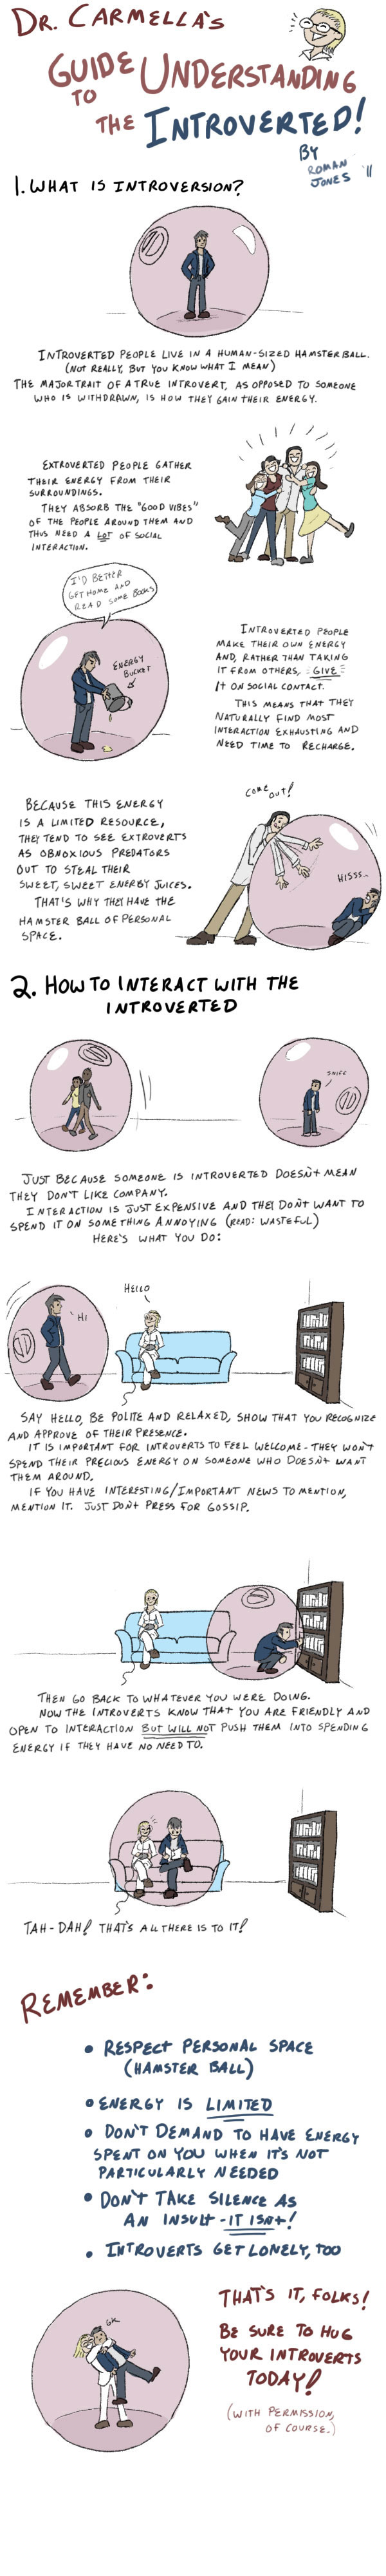 how_to_live_with_introverts_by_romanjones-d4tfoyo